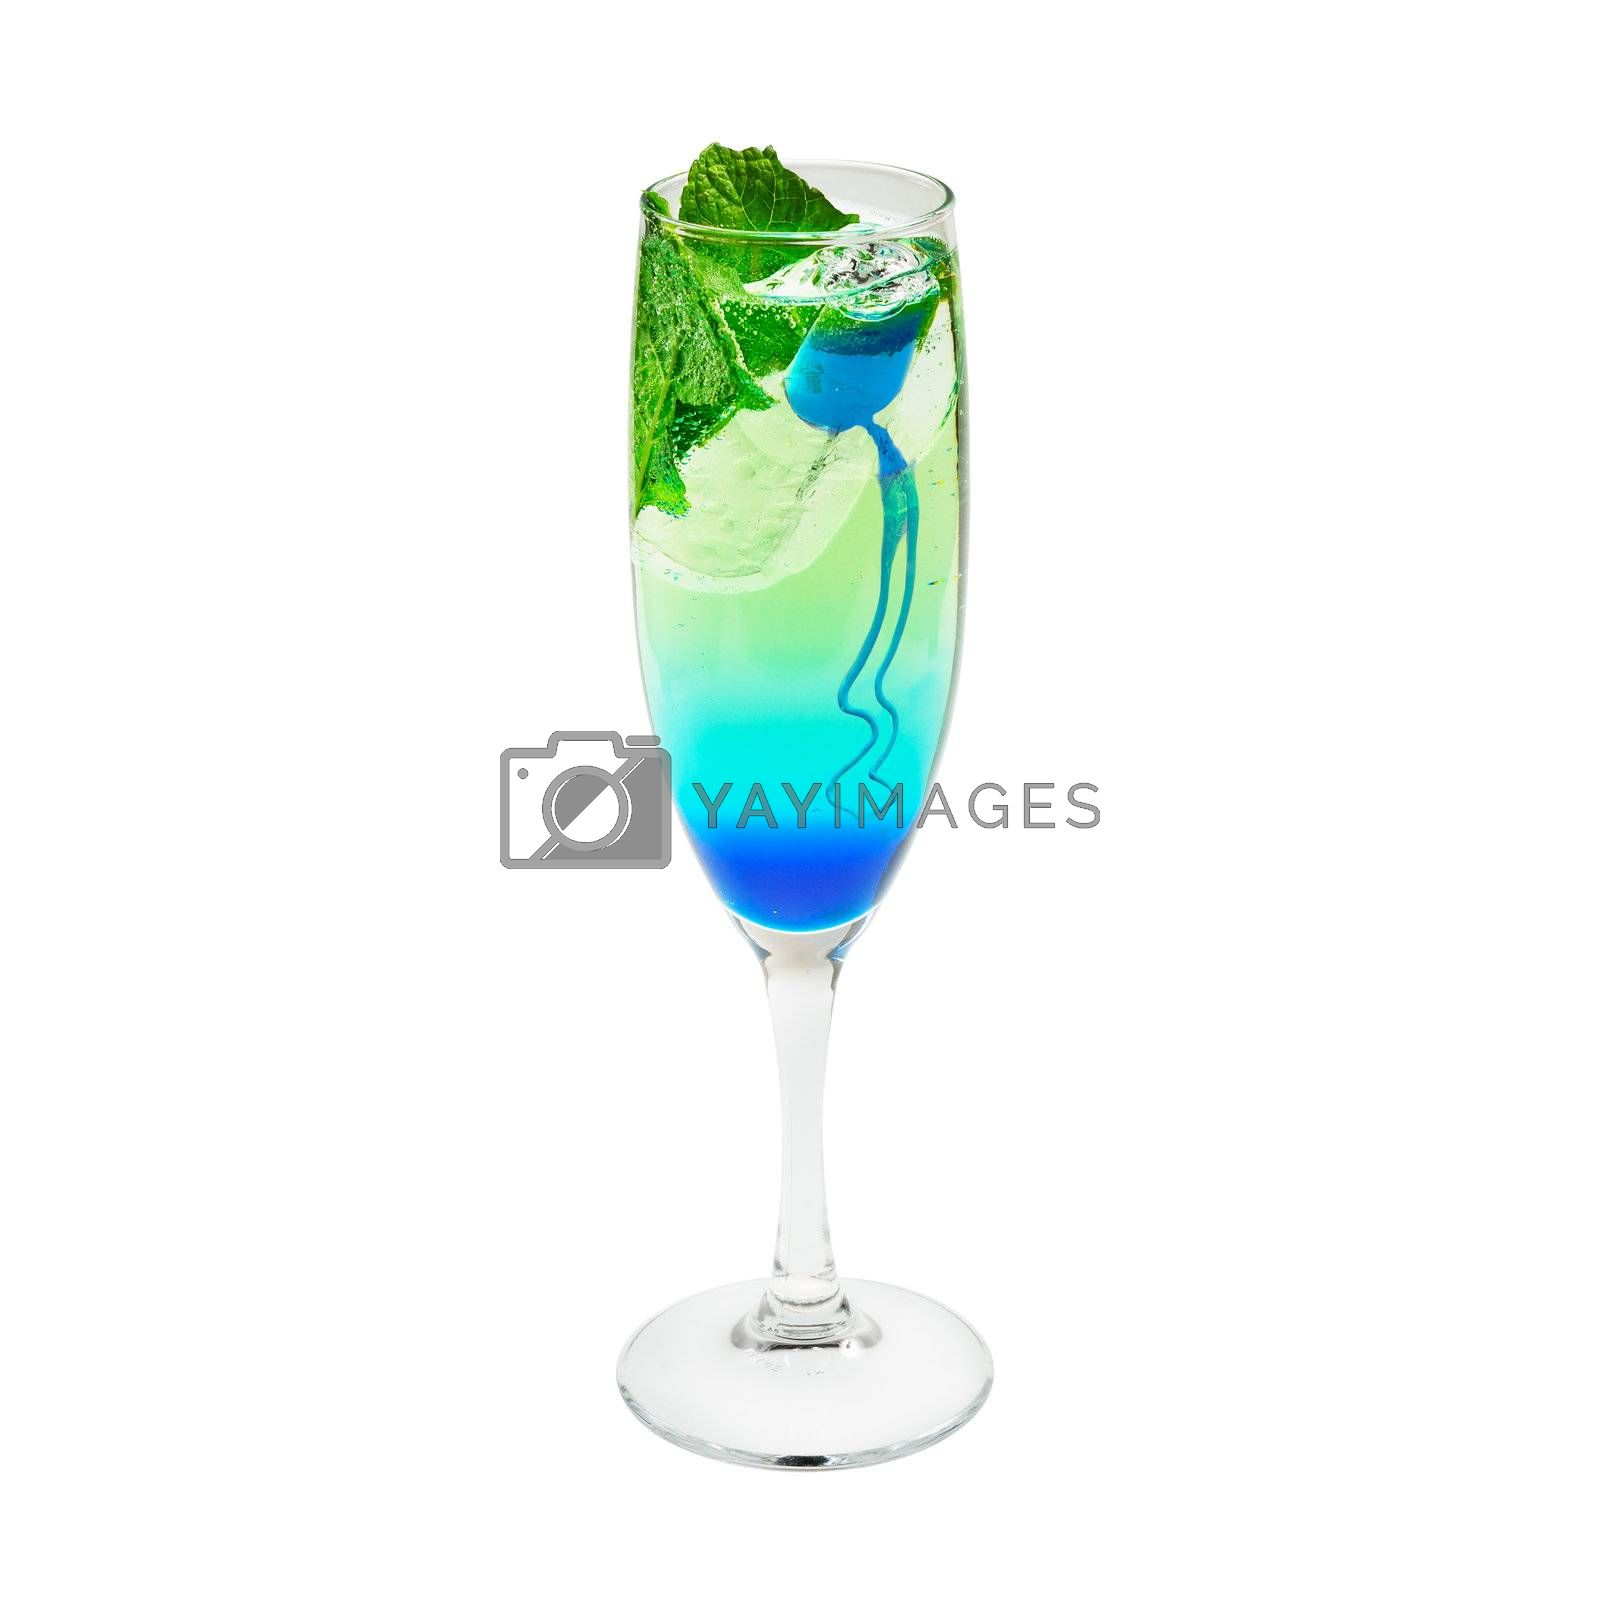 Layered cocktail blue and green. Isolated on white.